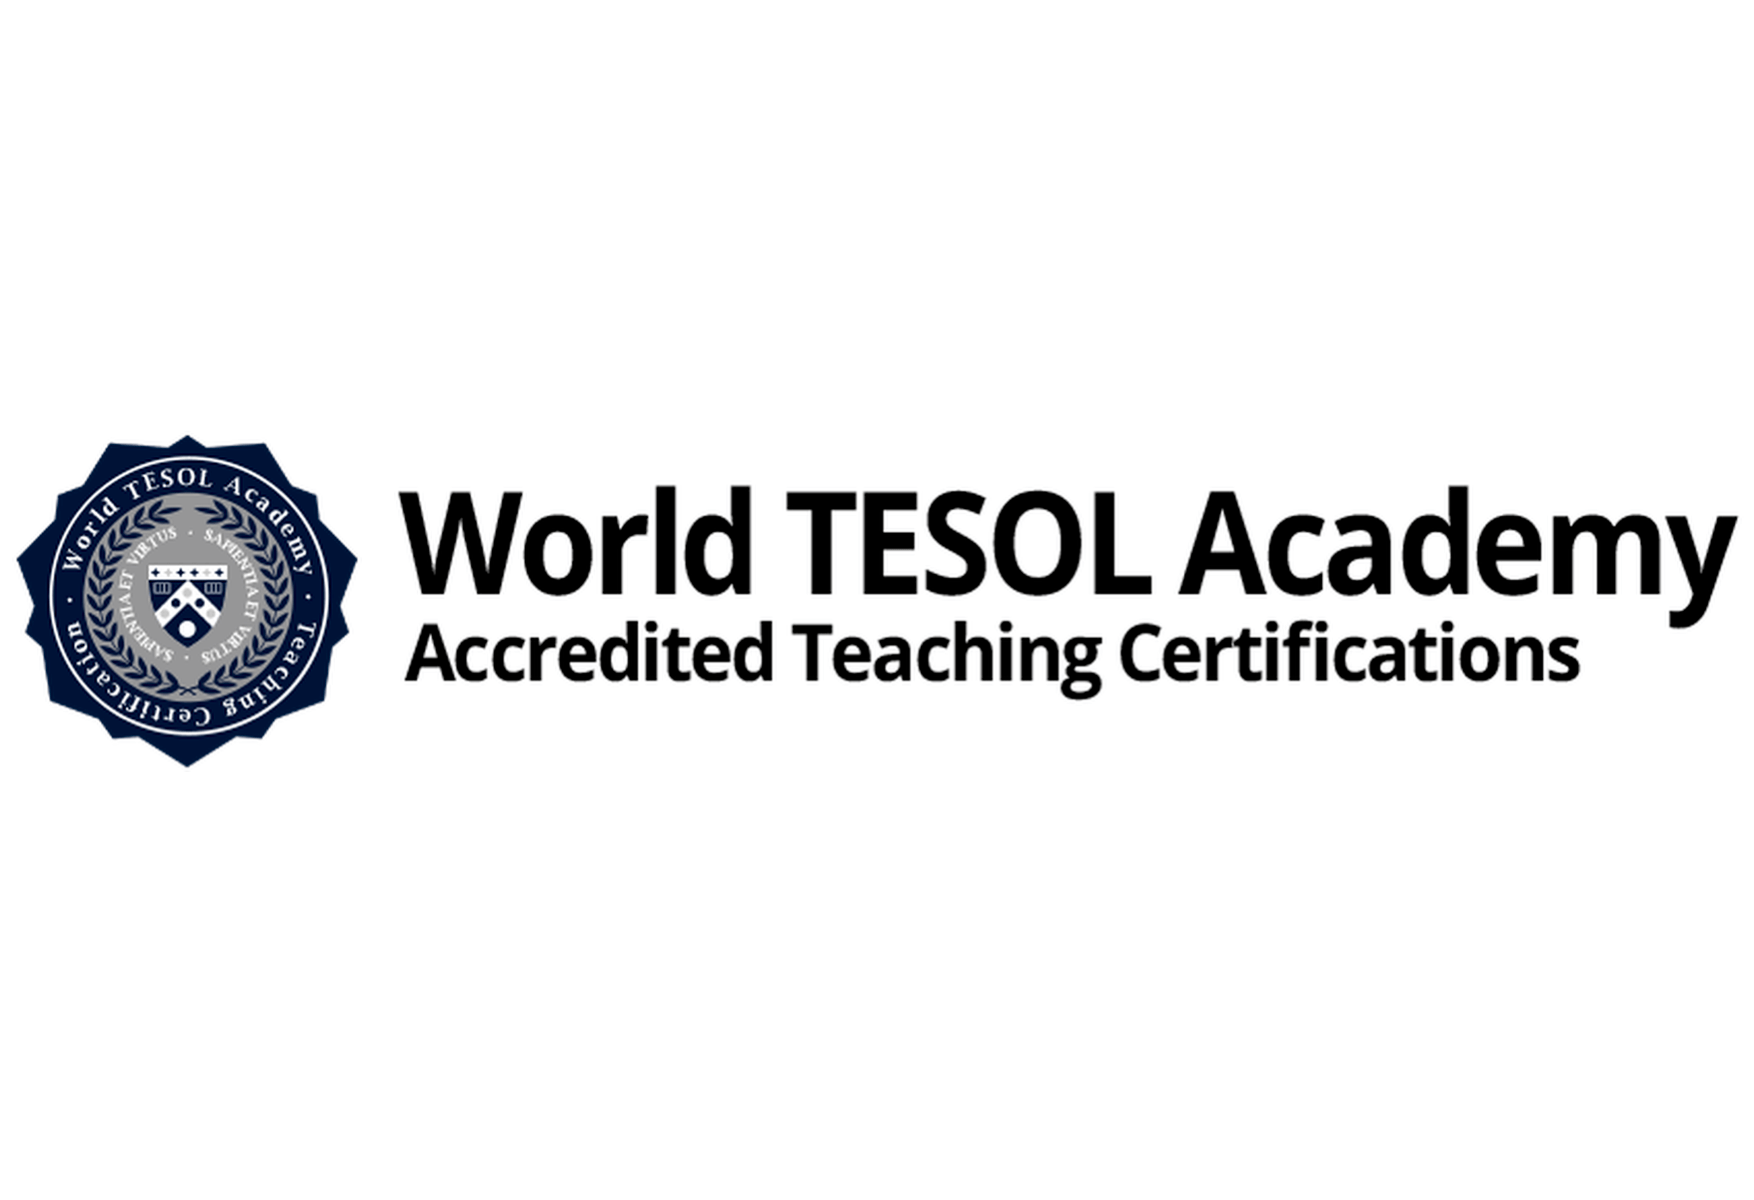 world-tesol-academy-tefl-tesol-reviews-logo